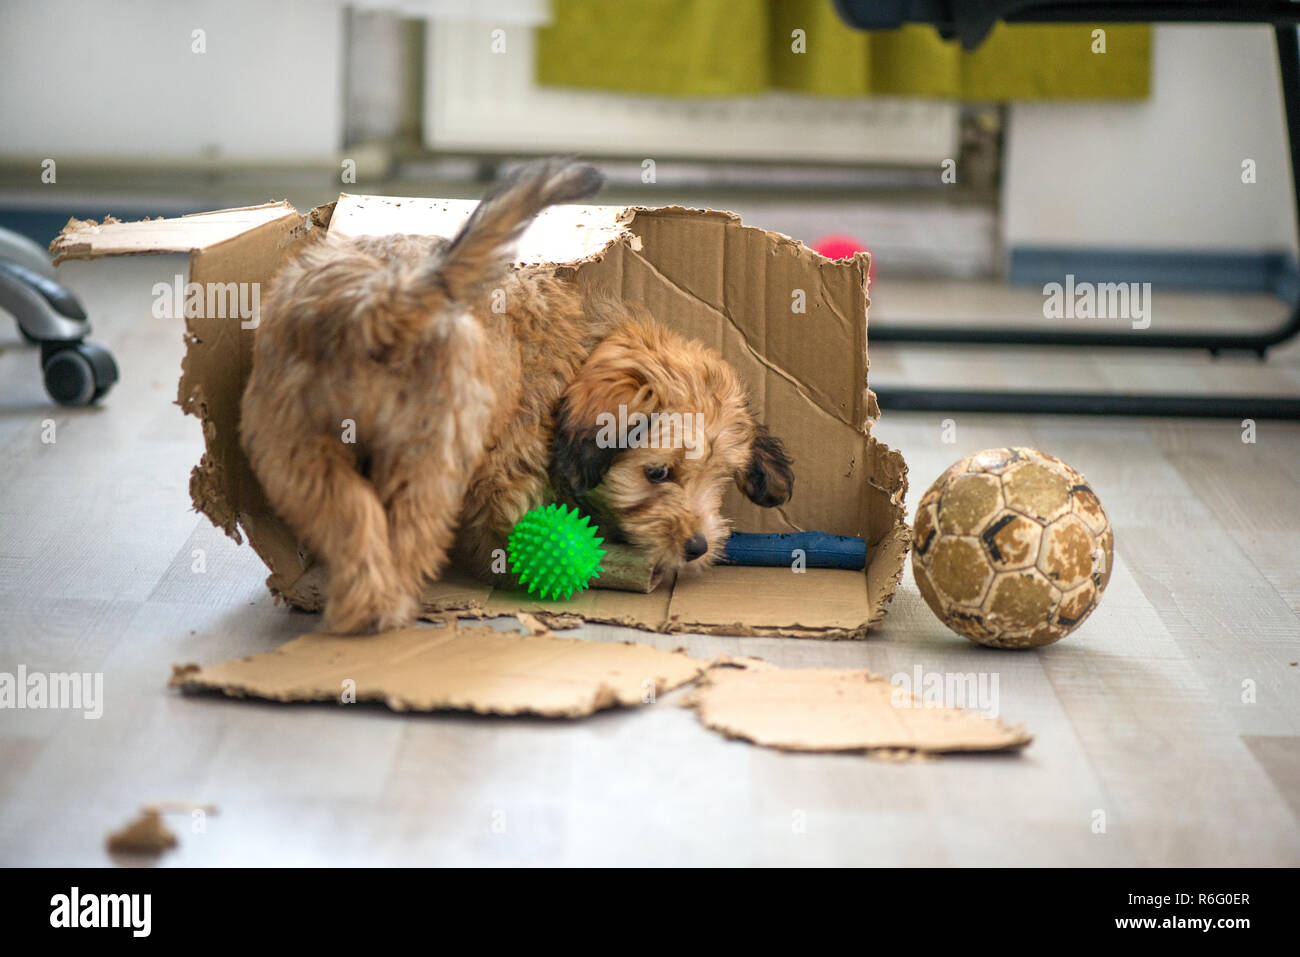 Naughty dog left home alone, sitting in the middle of mess on the floor. Disobedient dog with bad behavior. Puppy chews everything while teeth are gro - Stock Image